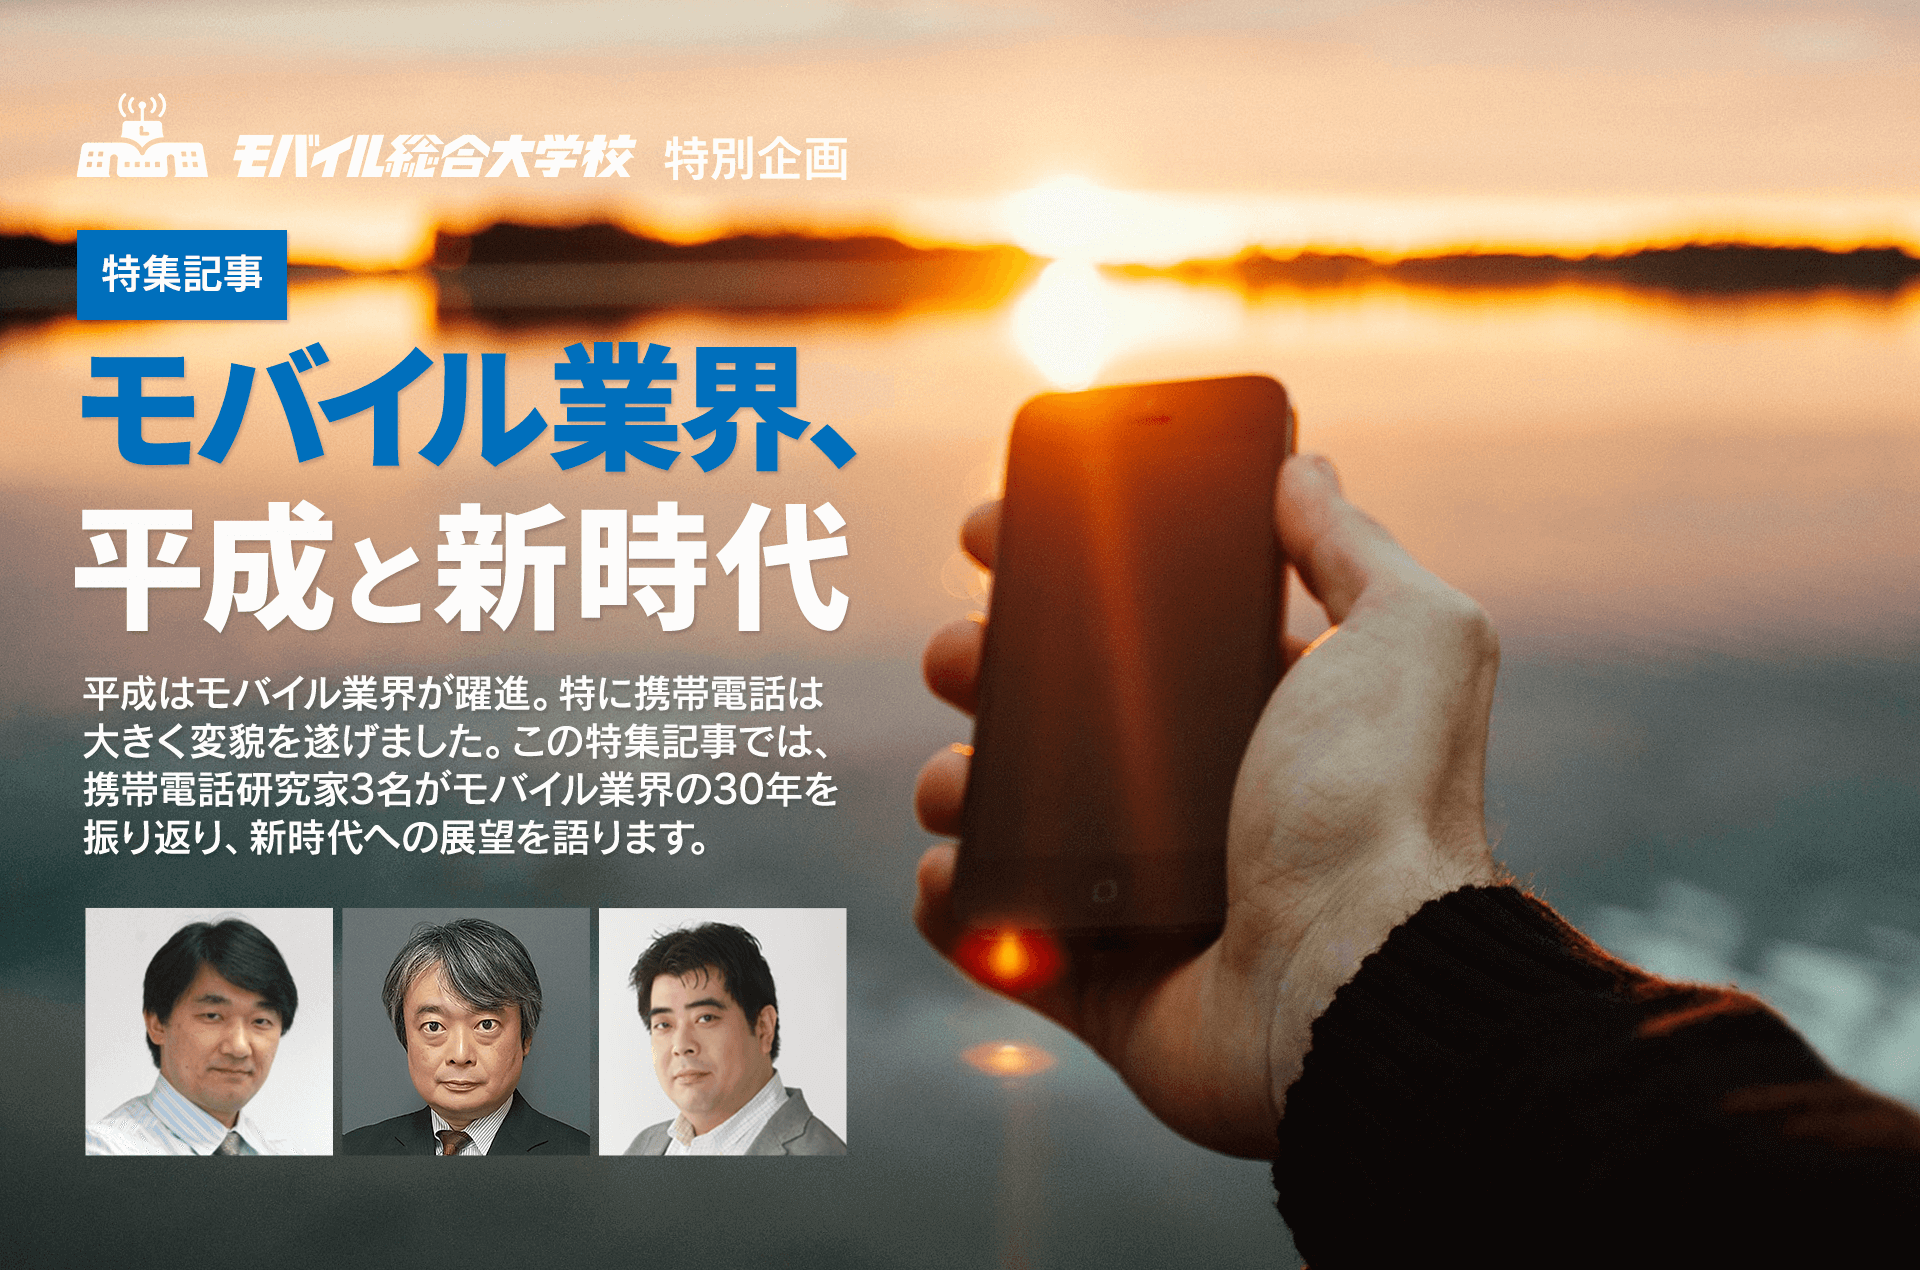 Mobile industry, Heisei and the new era